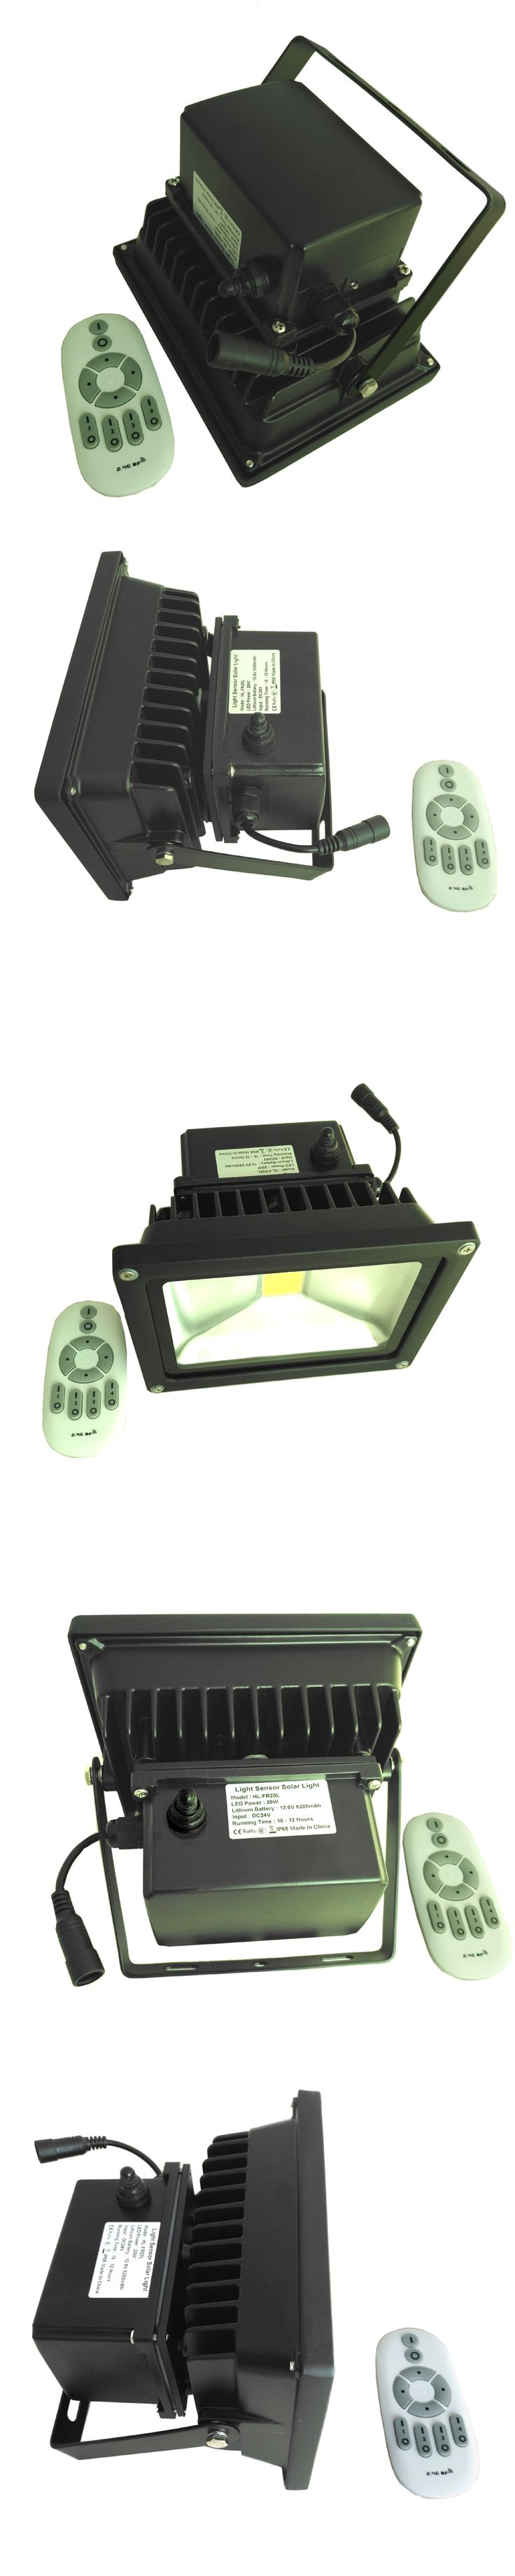 20W Solar Light LED Outdoor Flood Light camping Lamp Garden light Remote control stepless dimming